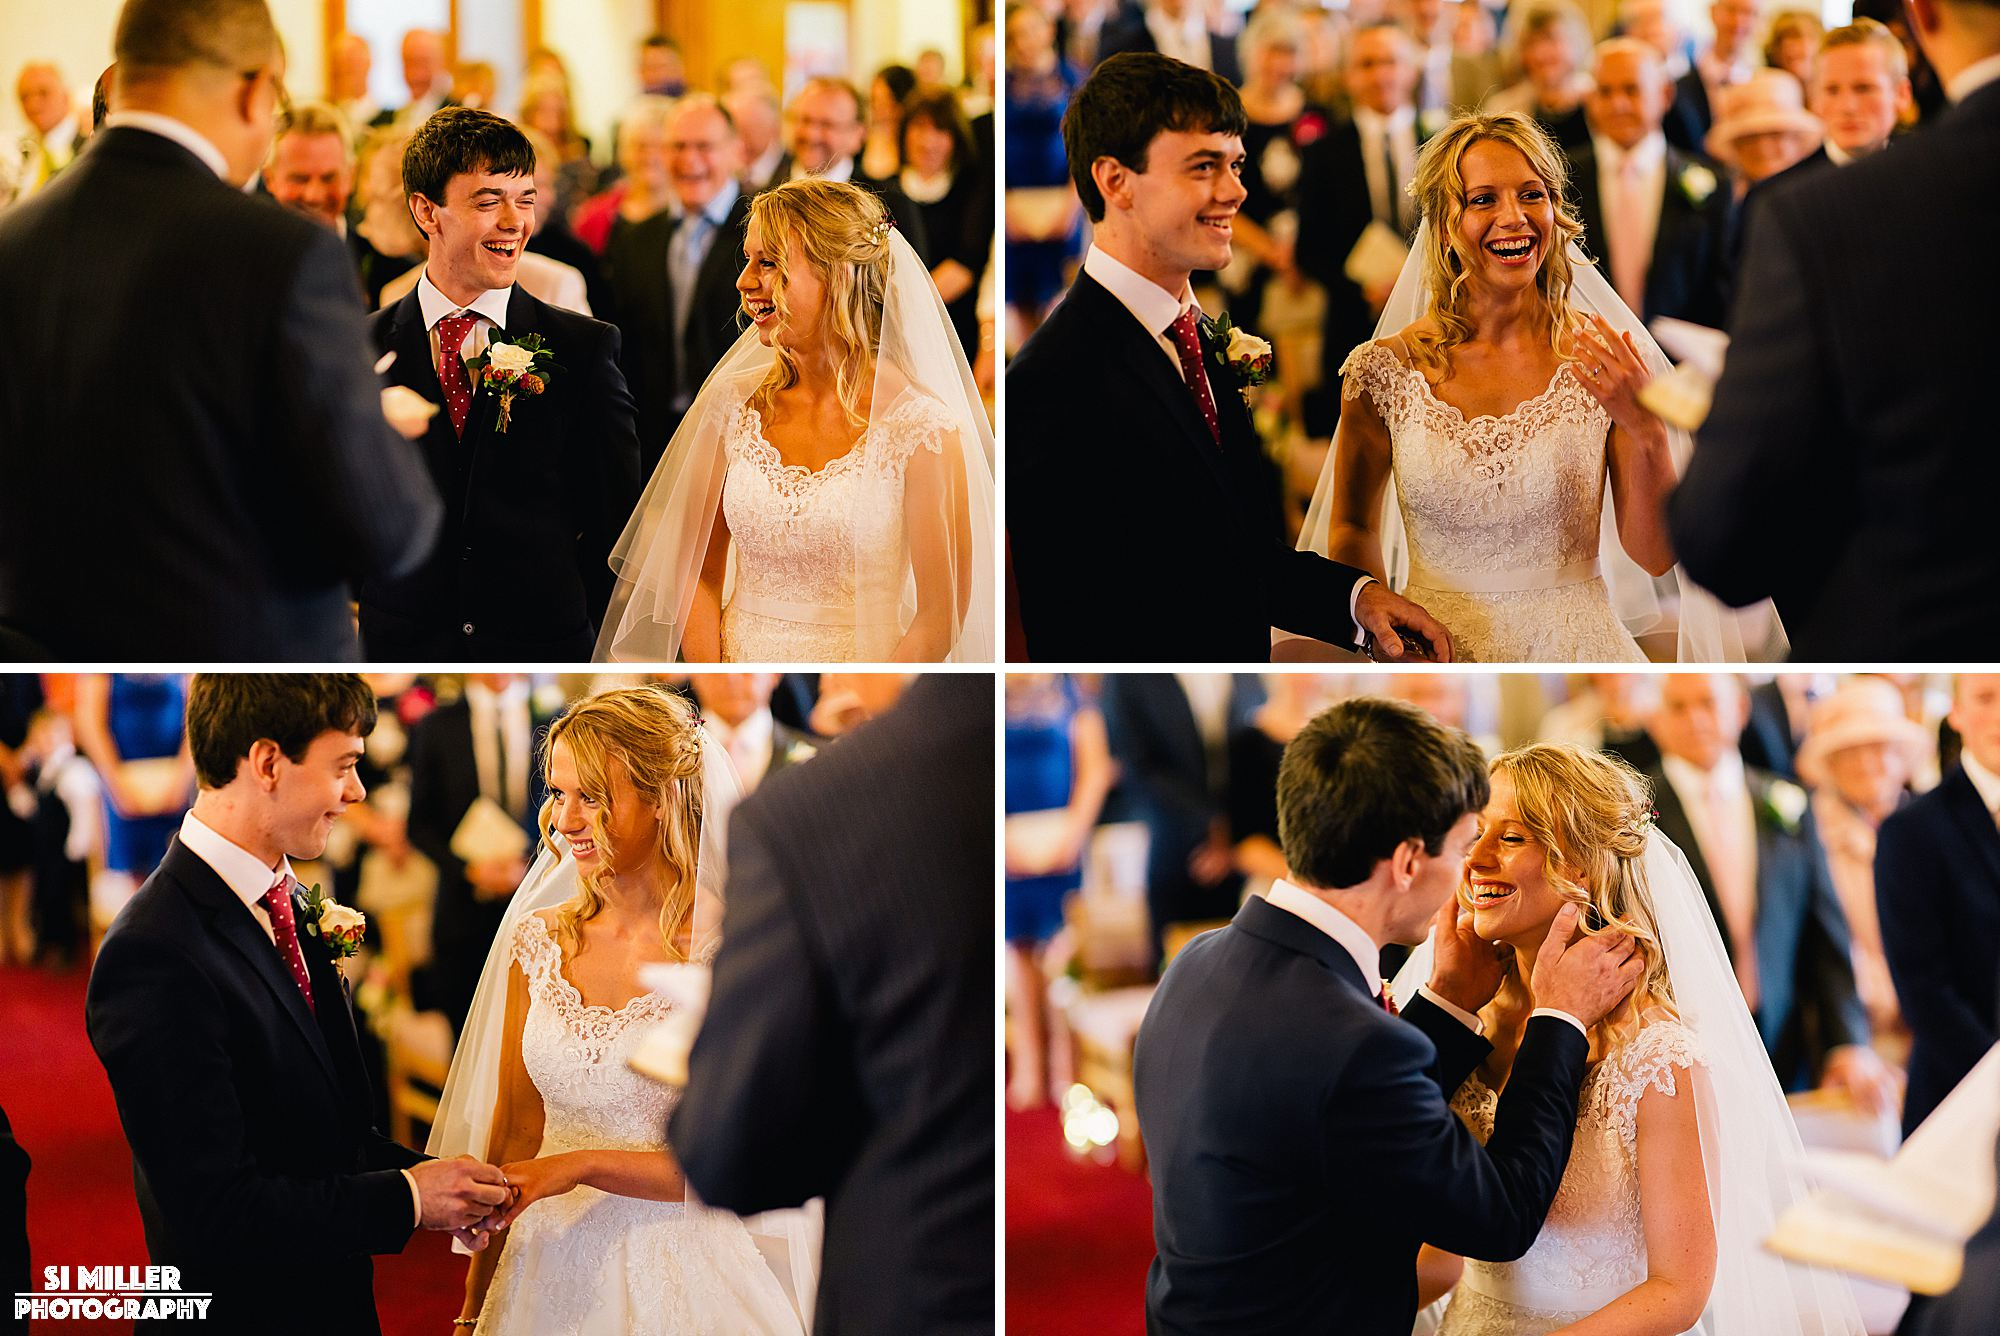 Bride and groom laughing and smiling during wedding ceremony preston